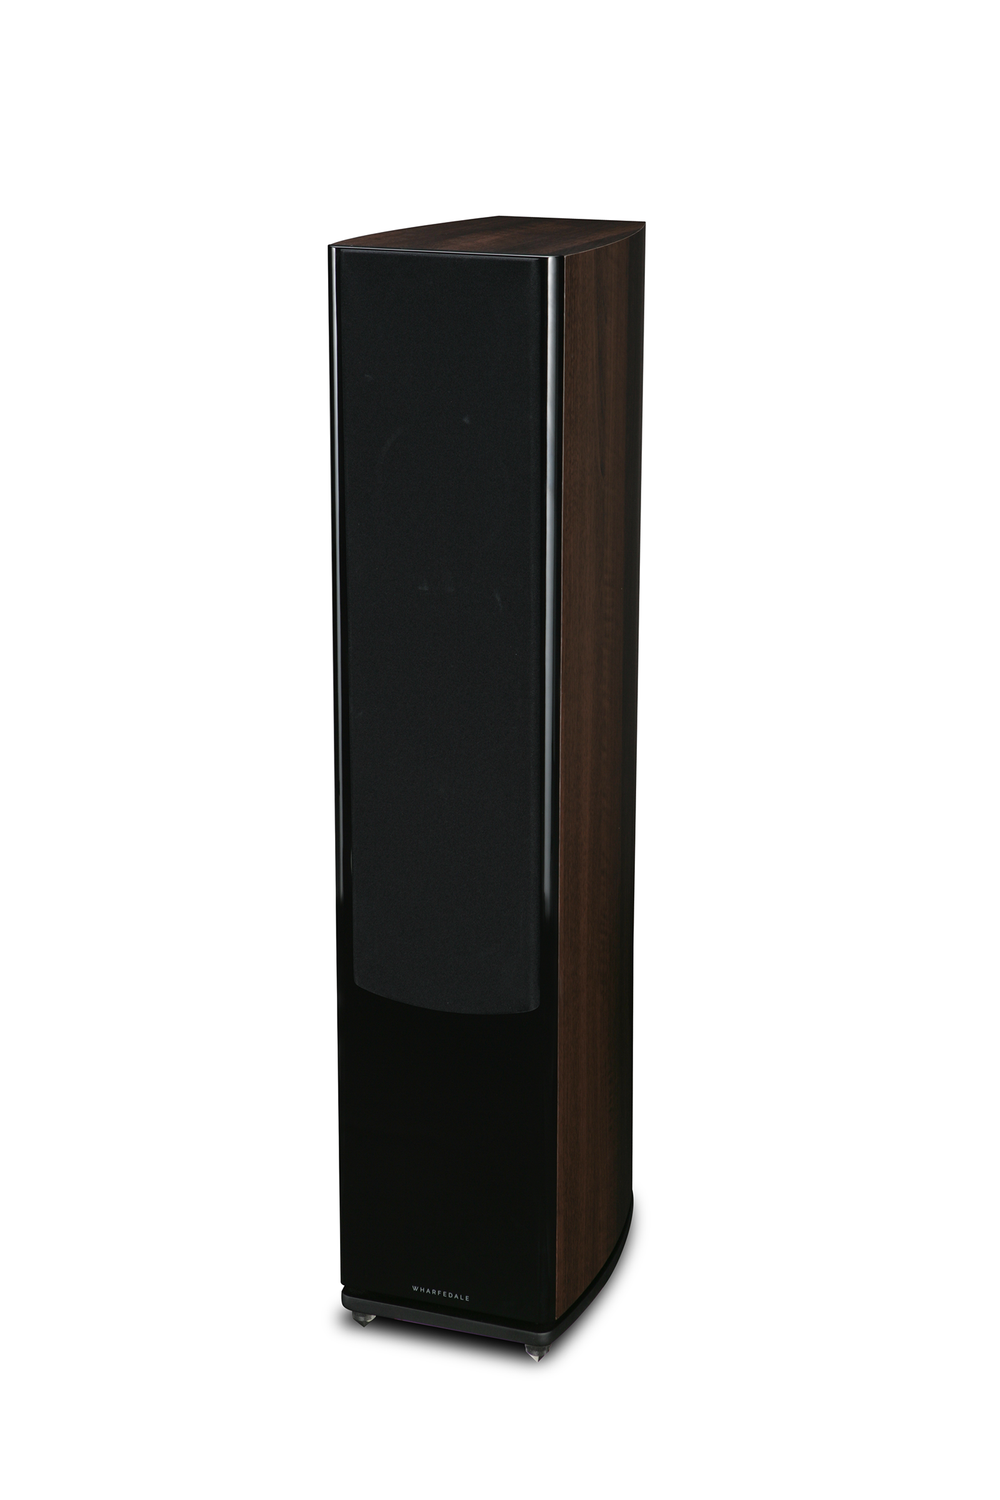 Diamond 11.4 Floorstanding Speakers